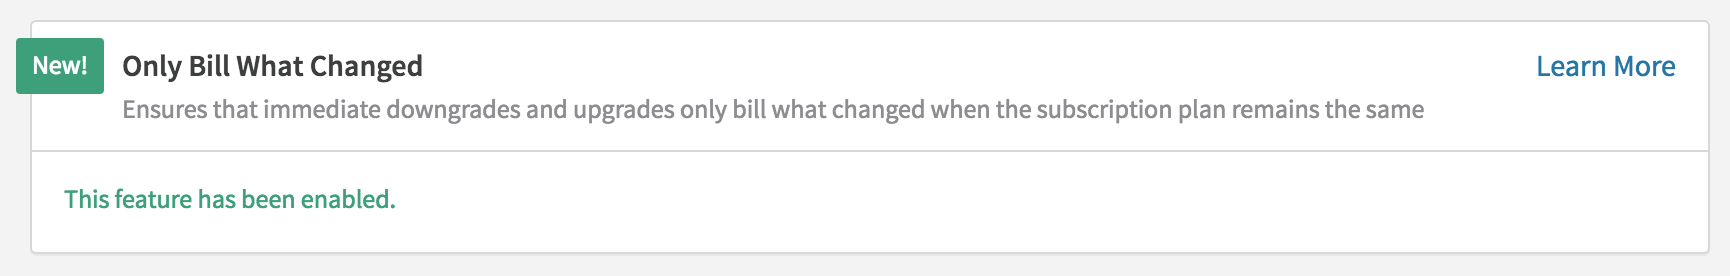 After Only Bill What Changed is enabled